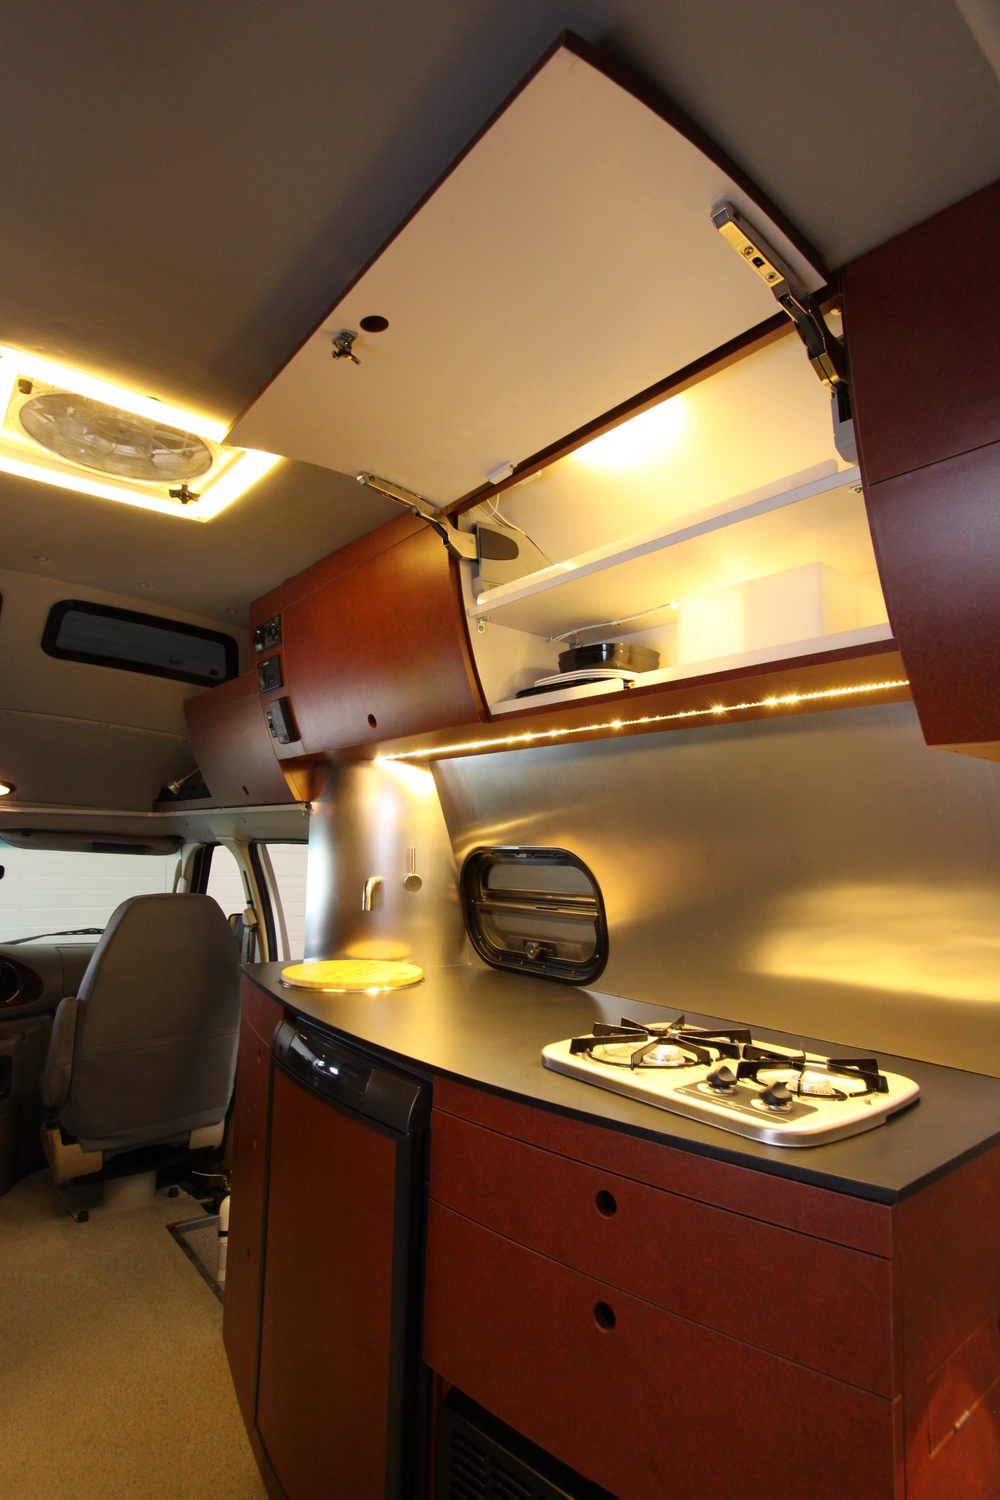 Custom RV Rathbun_061011_0070.JPG